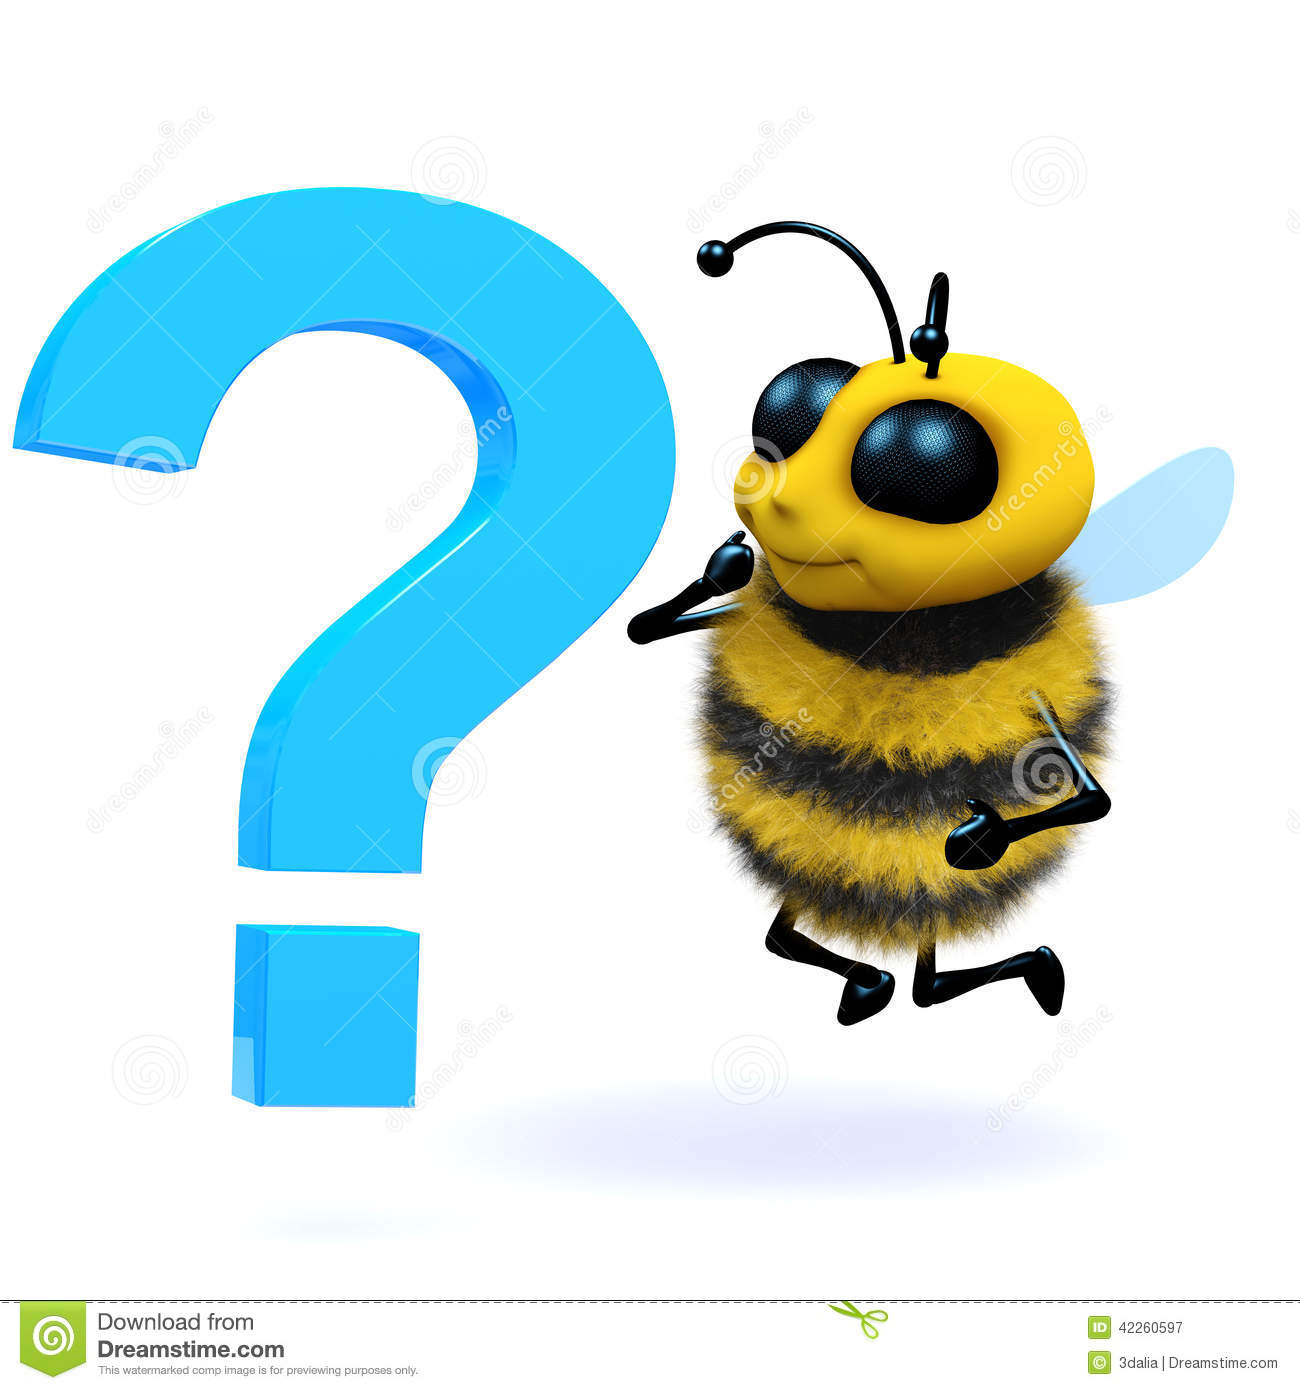 3d Honey Bee Question Mark Stock Illustration - Image: 42260597